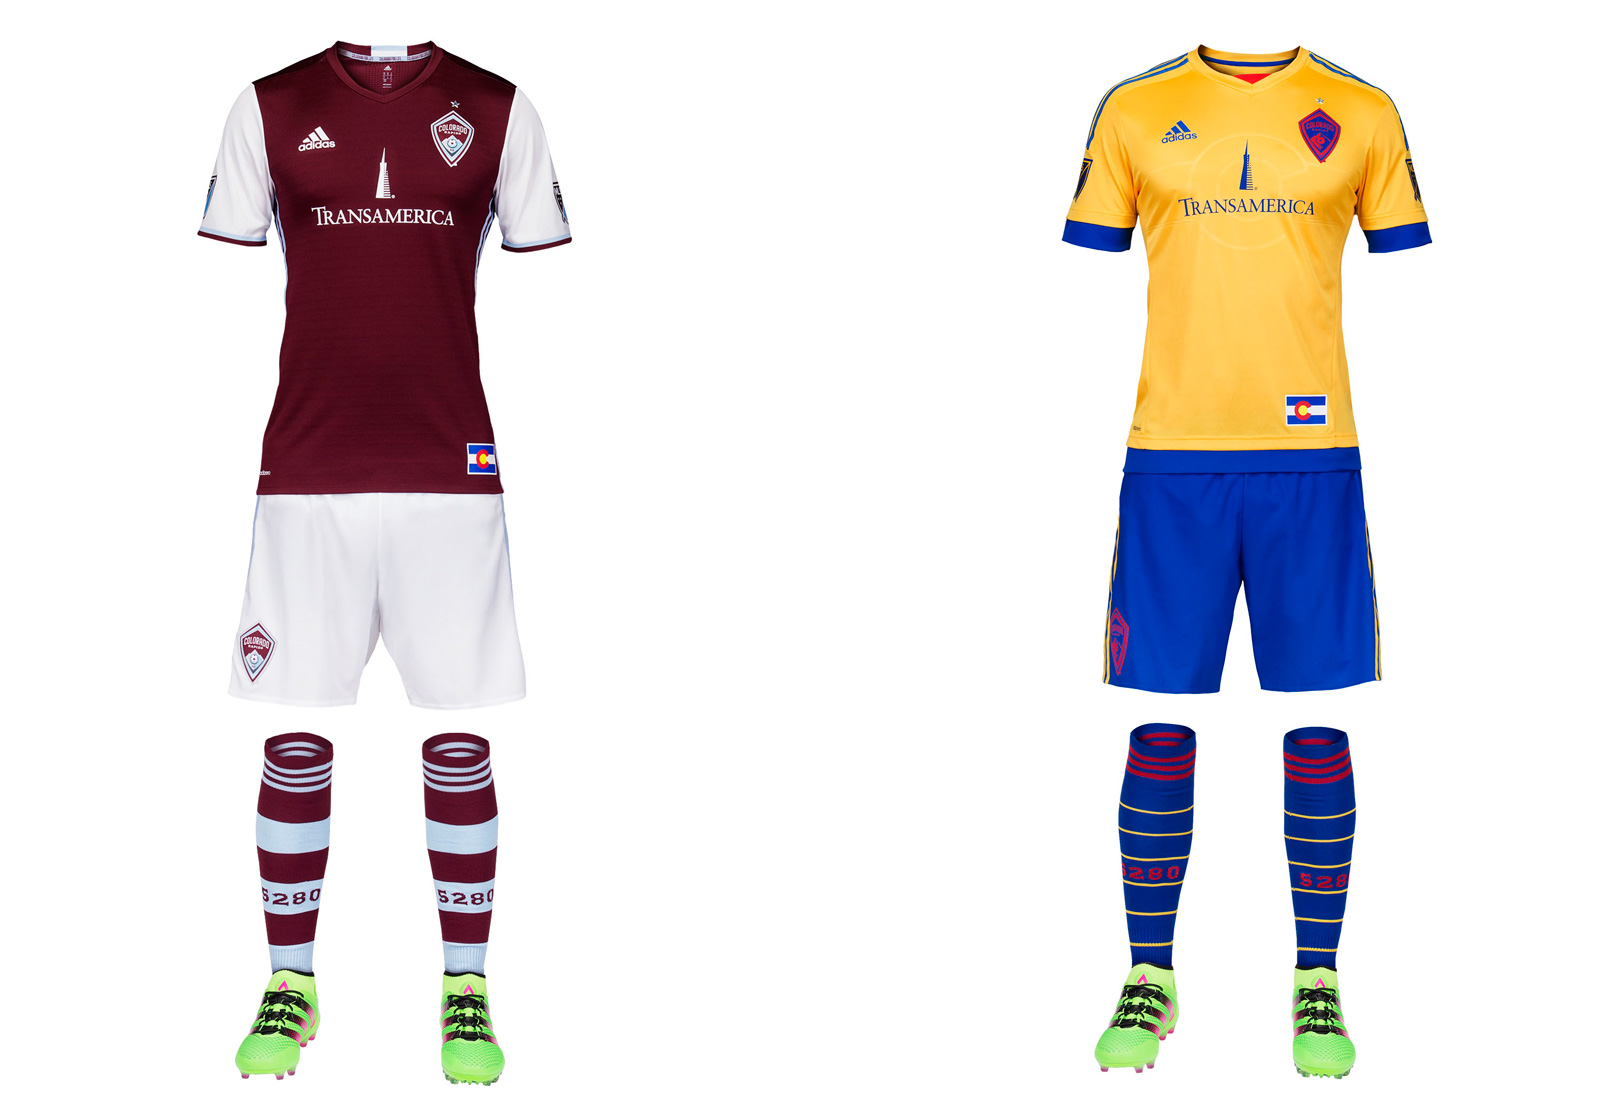 Colorado made just a few very subtle changes to its home uniform this year, and that's fine. The three stripes moved from the shoulder to the side, there's a bit of color on the cuffs and the hoops on the sock widened, which is awesome. The burgundy and white is elegant and immediately recognizable. The club's problem remains the logo, a skinny shield featuring a mountain (not rapids) similar to its NHL, NBA and MLB neighbors. It's tough to suggest a fourth crest for a team that's had trouble establishing an identity, but it might help. This one leaves no impact. Colorado's sharp state flag-inspired away set carries over from 2015.